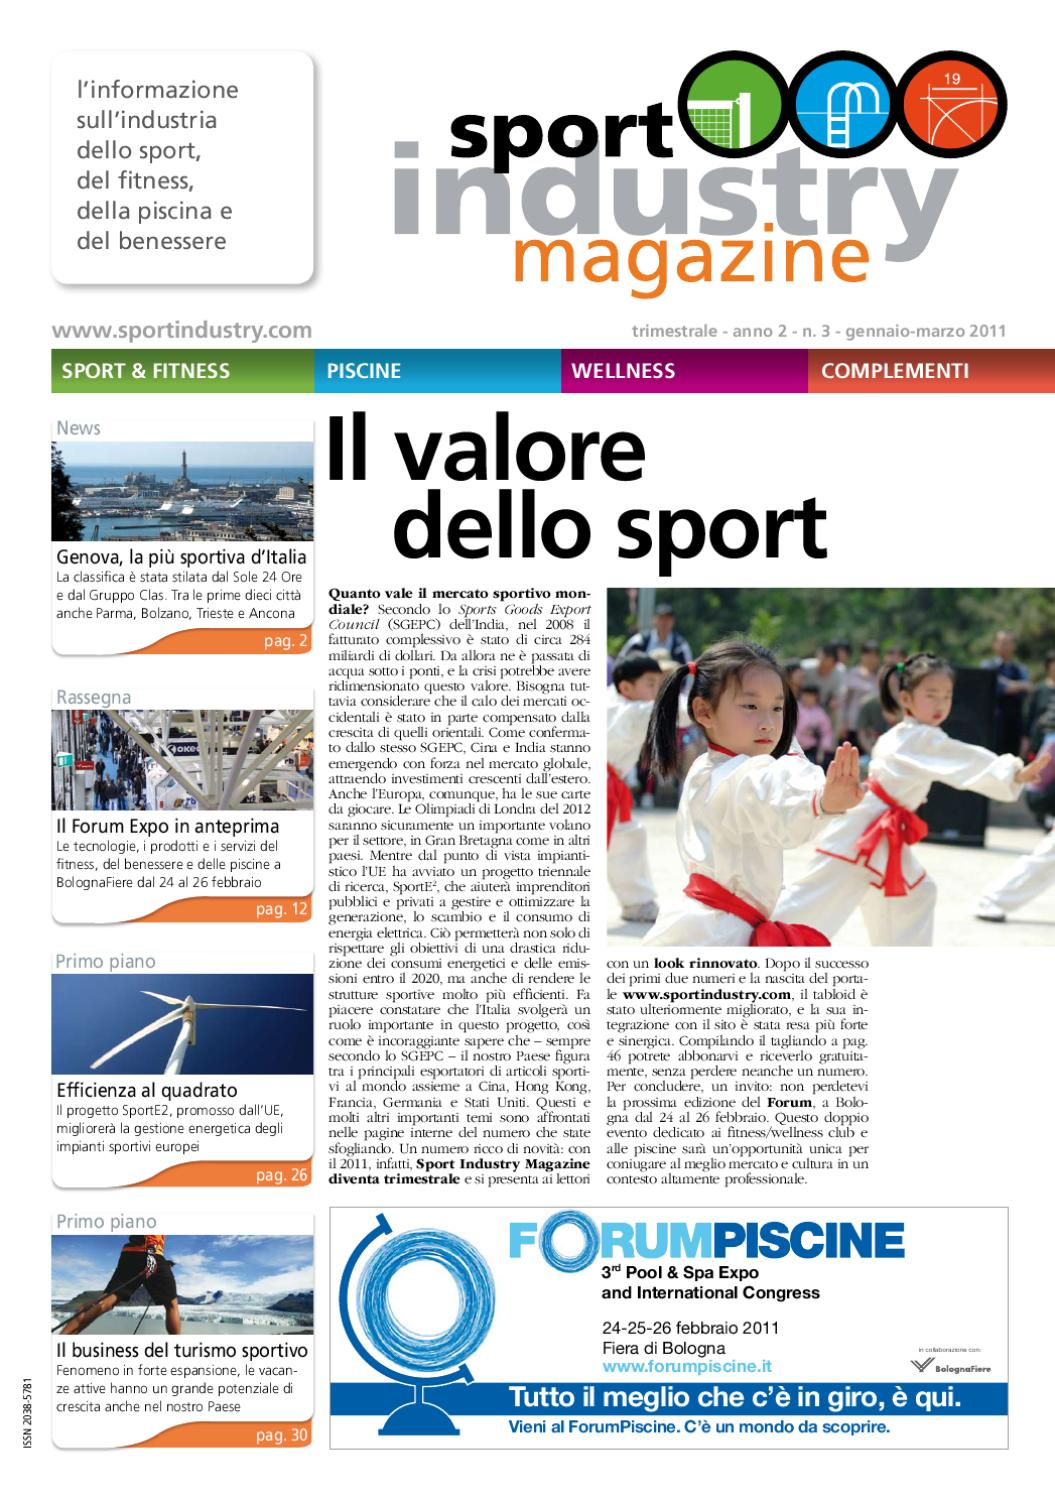 03 SPORT INDUSTRY MAGAZINE By EDITRICE IL CAMPO